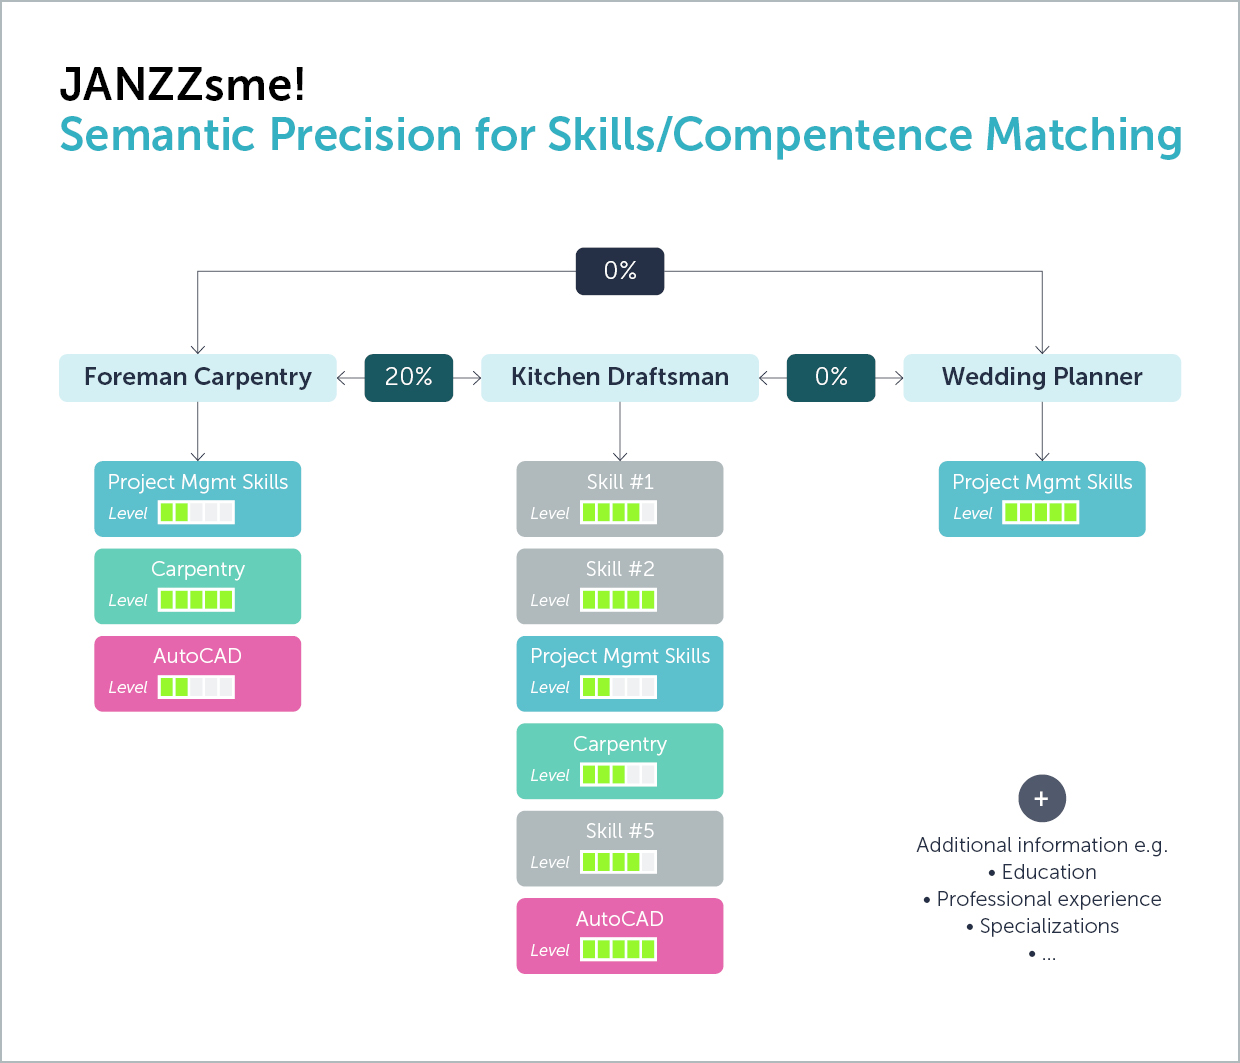 JANZZsme! Semantic Precision for Skills/Competence Matching